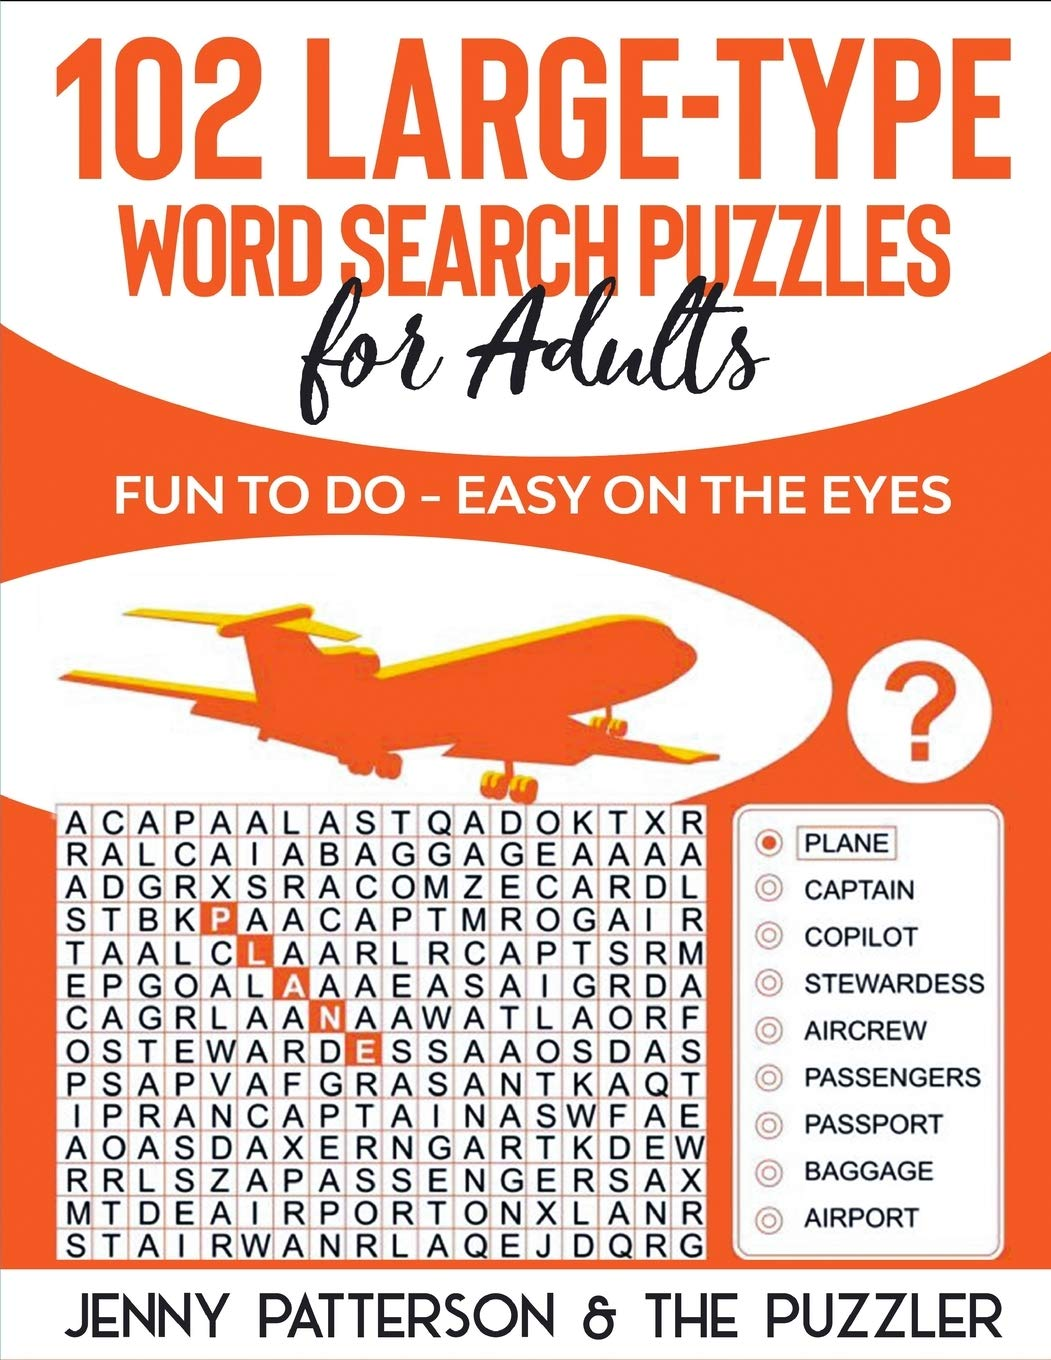 102 Large Type Word Search Puzzles For Adults Fun To Do Easy On The Eyes The Puzzler Series Patterson Jenny Puzzler The 9781098577063 Amazon Com Books